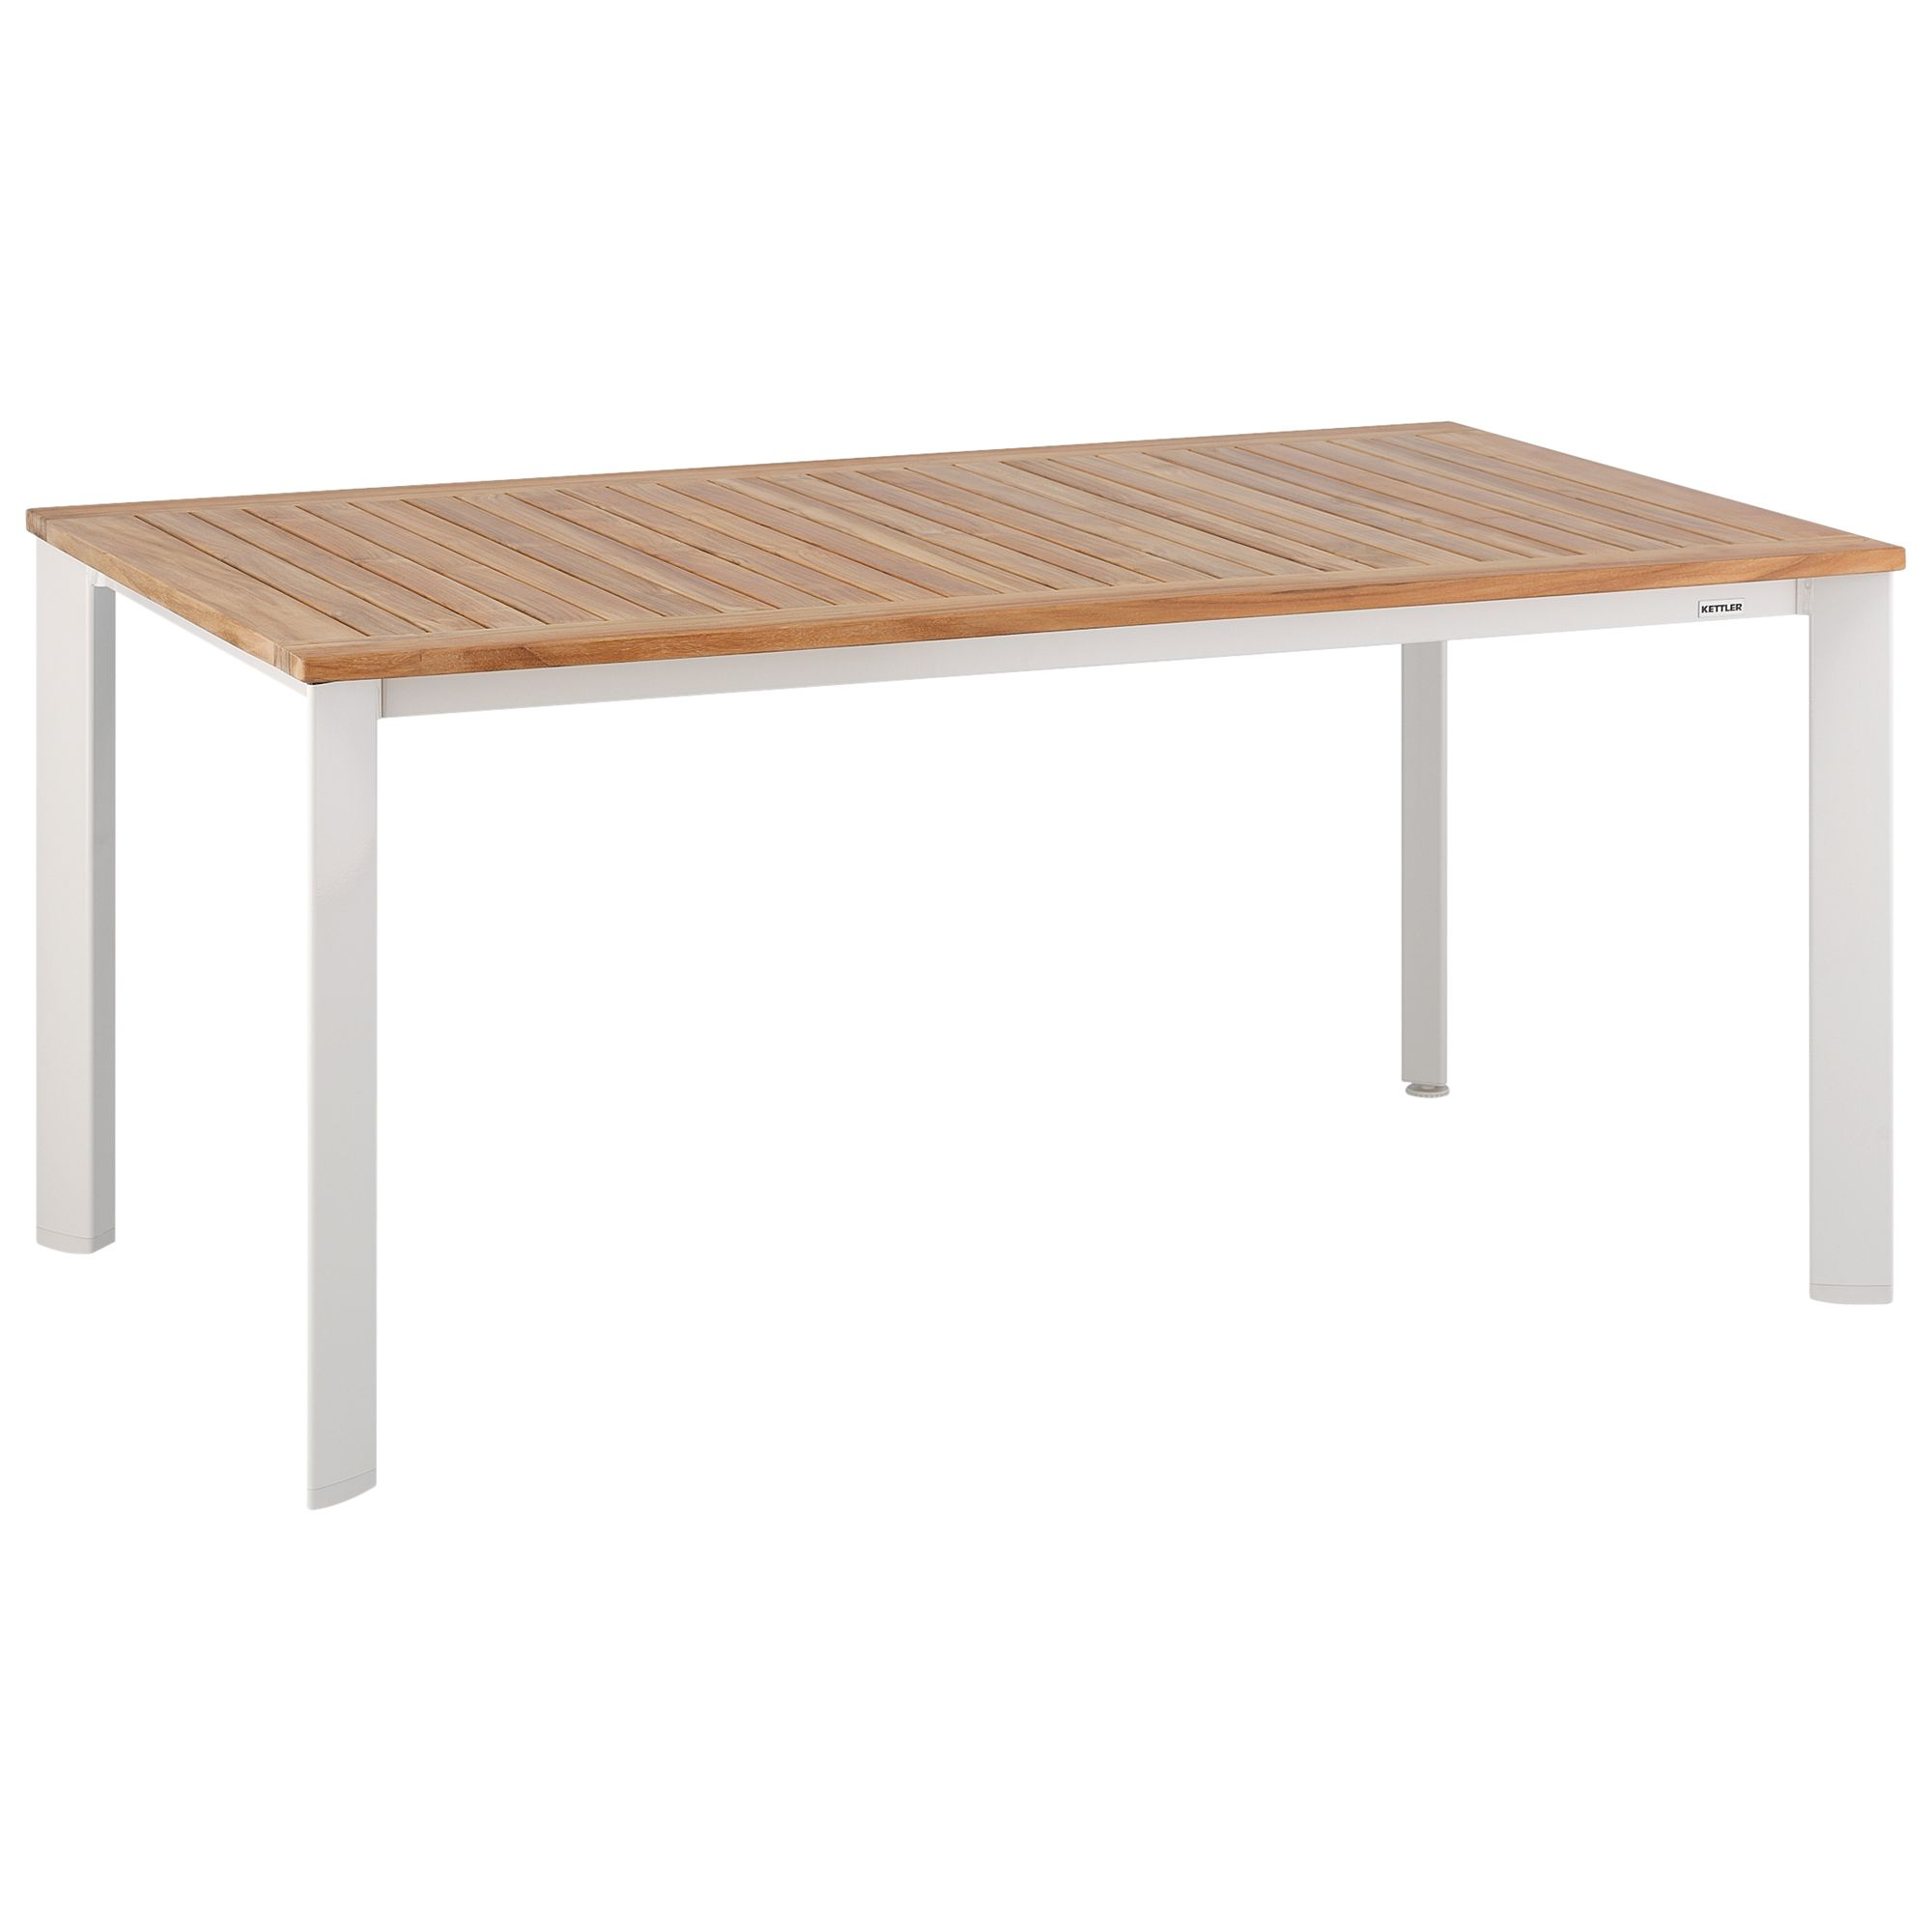 Kettler Avance Rectangular 6 Seater Outdoor Dining Table